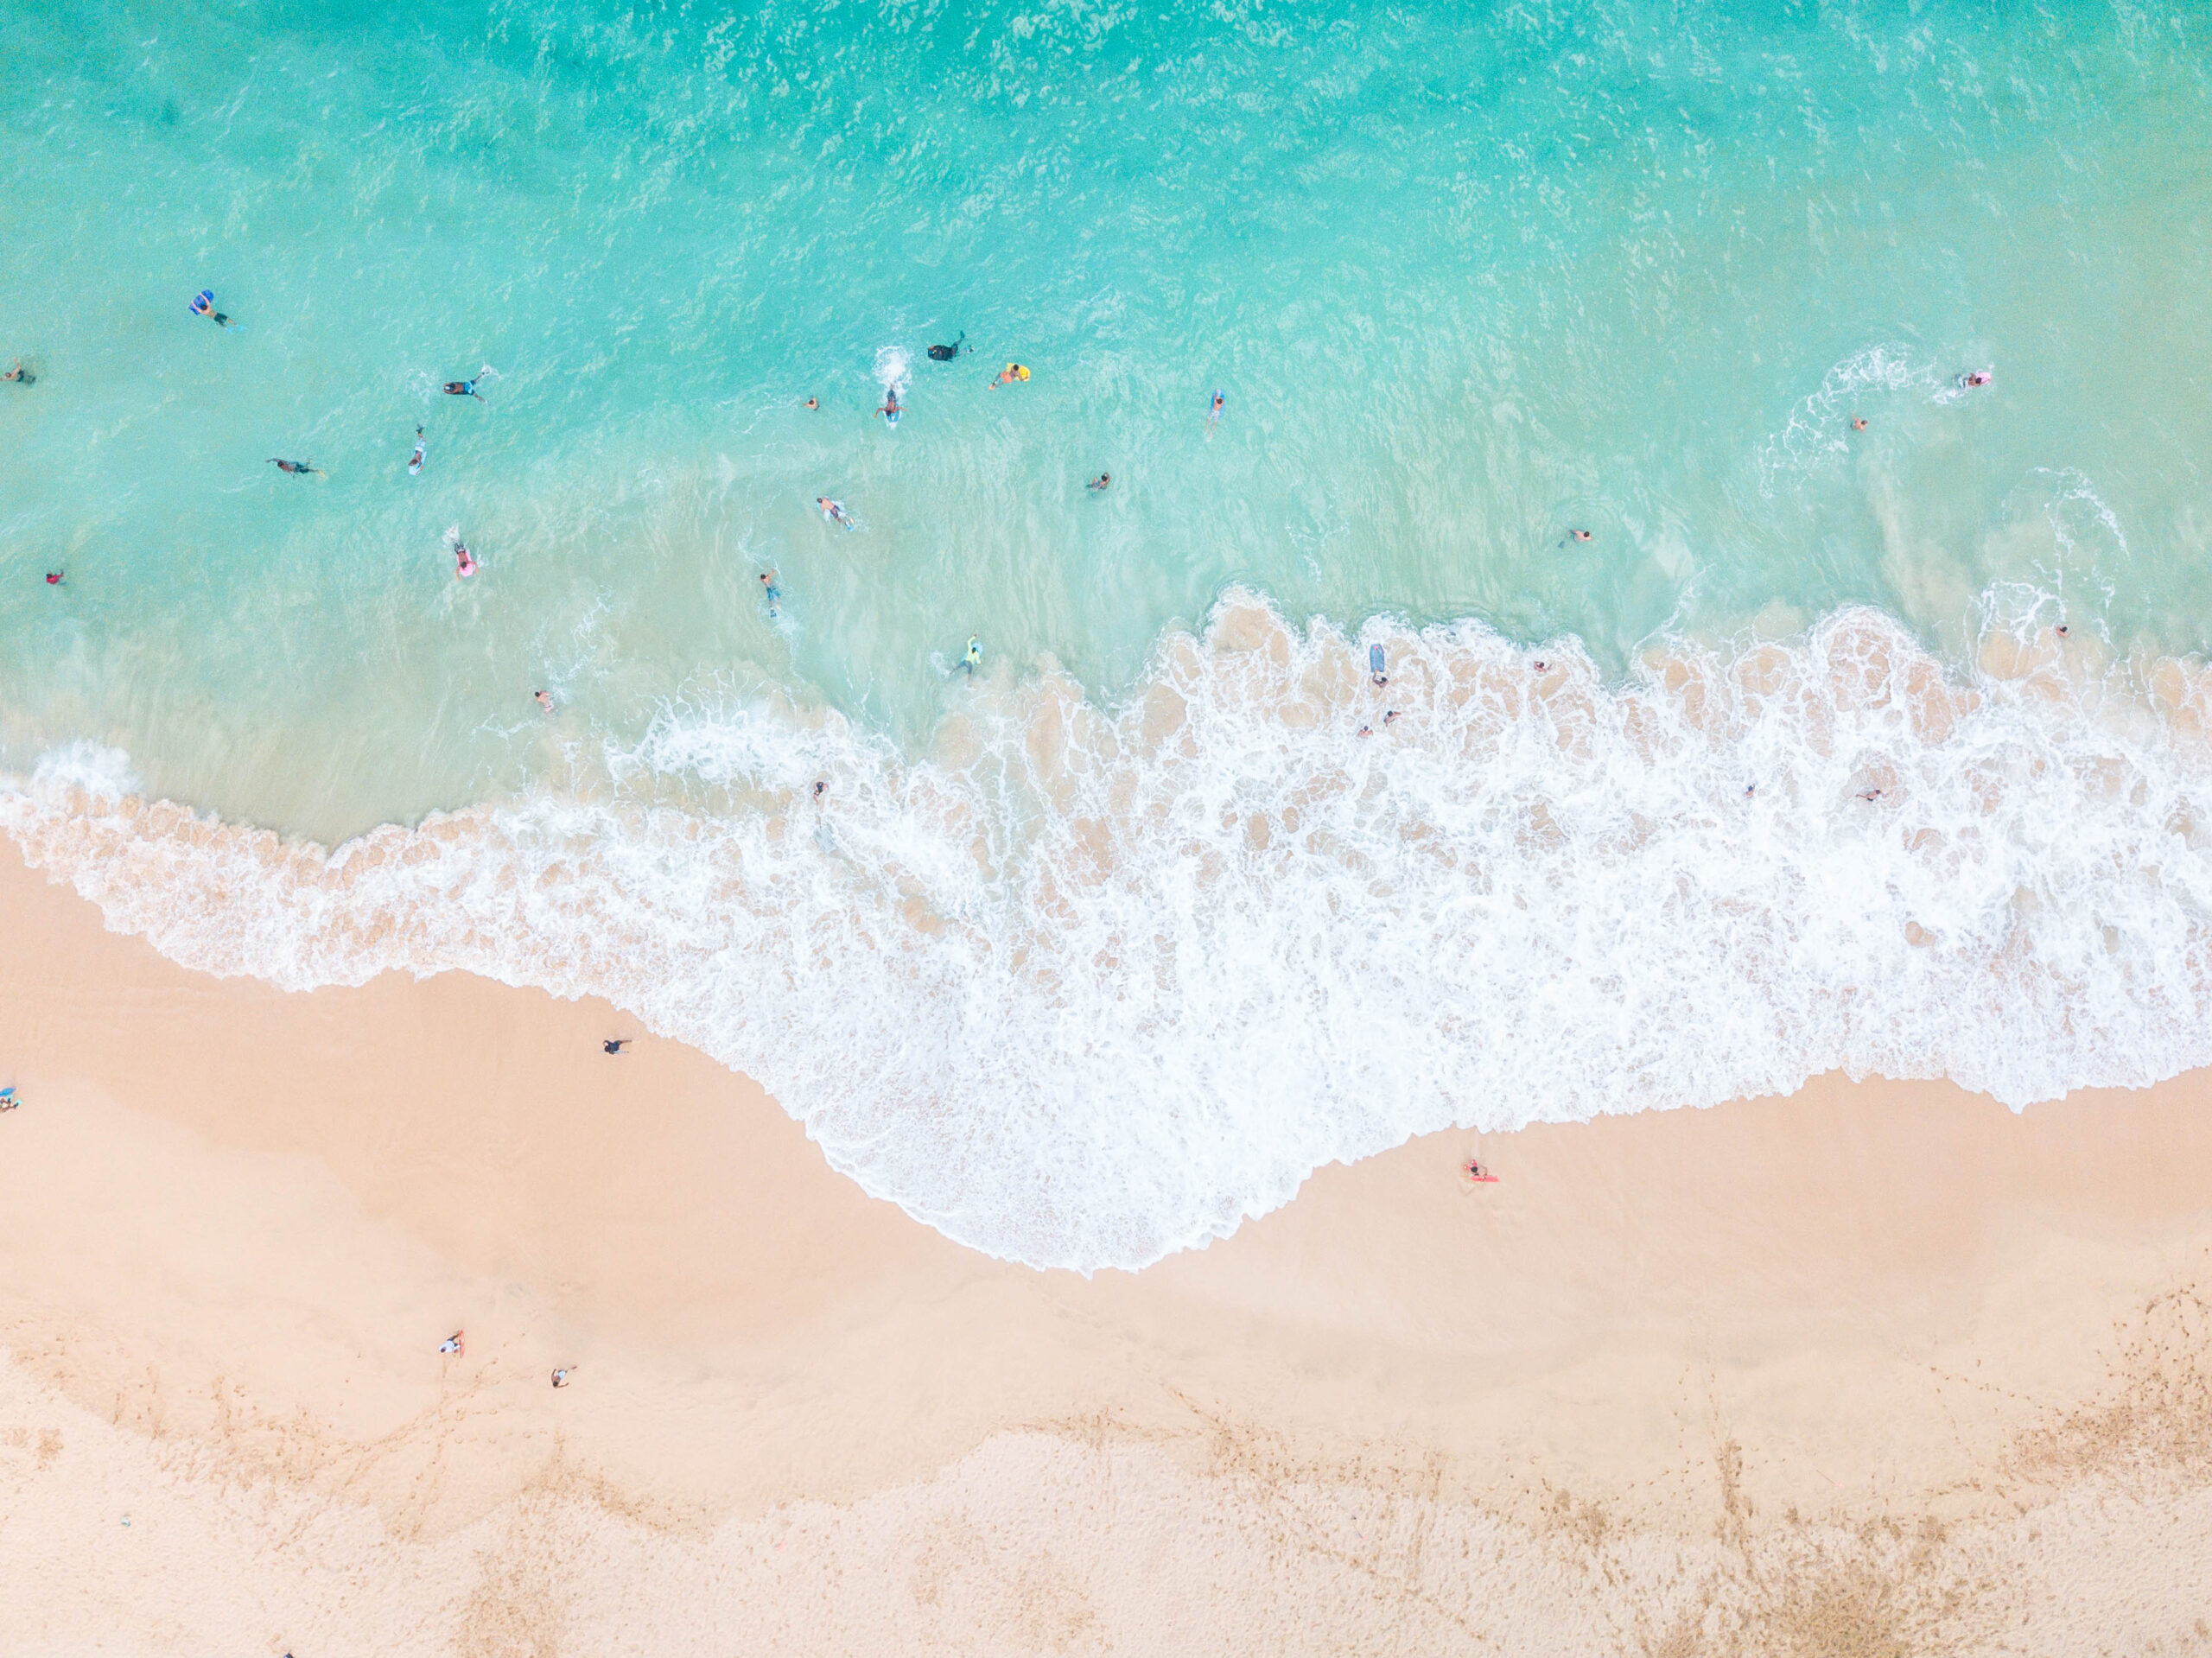 Drone view of Hawaii beach - Turquoise water, people swimming, white sandy beach